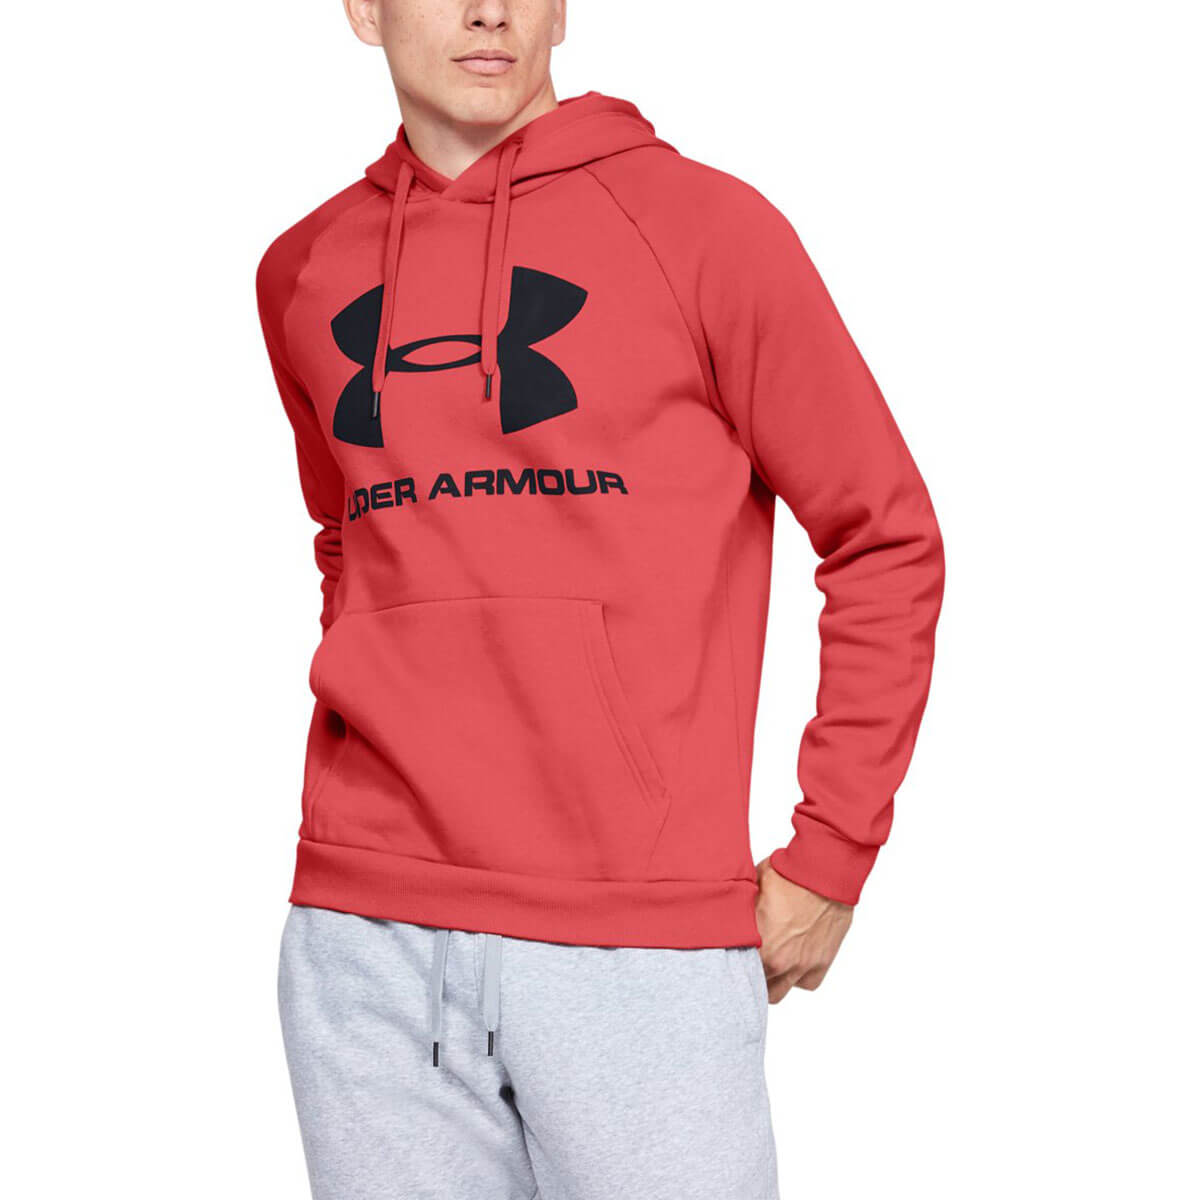 Details about Under Armour Mens 2020 Rival Fleece Sportstyle Logo Quick Dry Hoodie Hoody